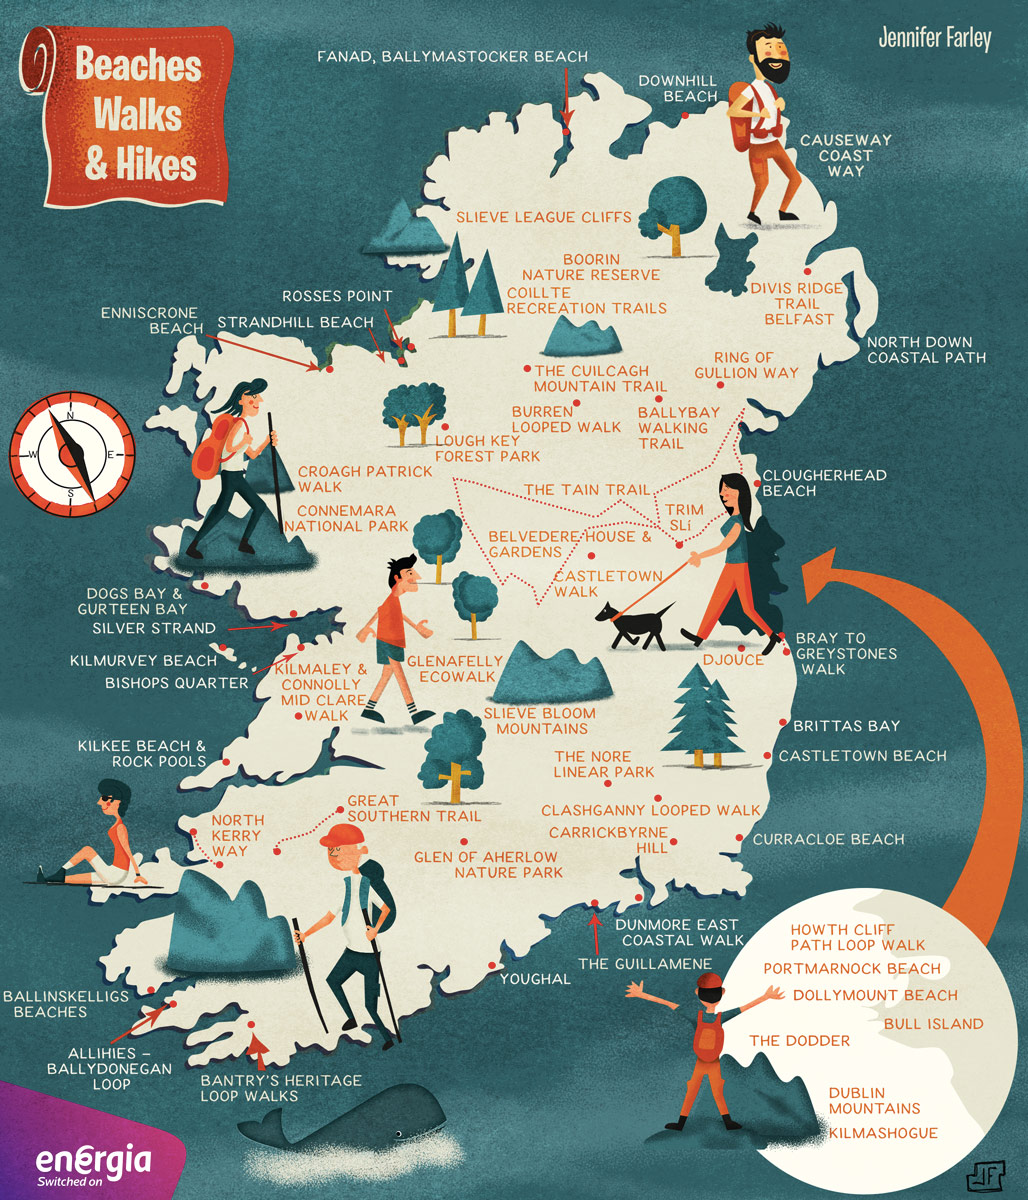 Map Of Ireland Beaches.Hikes Walks Beaches In Ireland Map Jennifer Farley